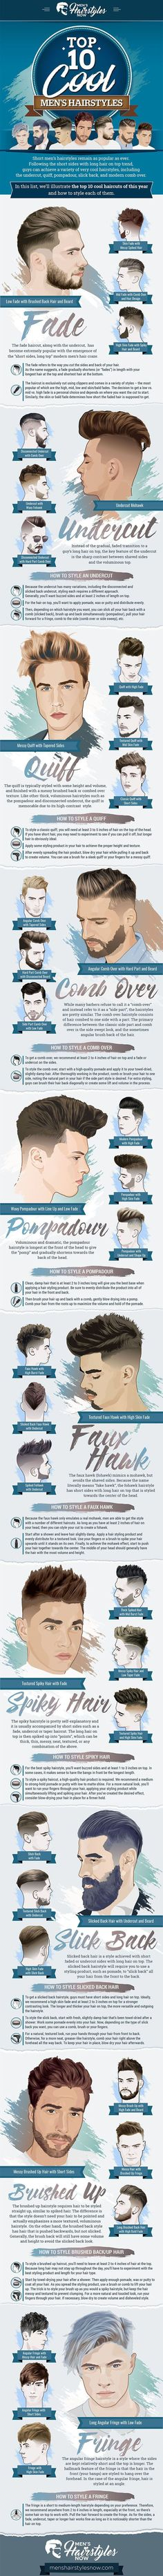 Cool Hairstyles For Men - Best Trendy and Stylish Men's Haircuts 2017 http://www.99wtf.net/men/mens-hairstyles/best-hairstyle-men/